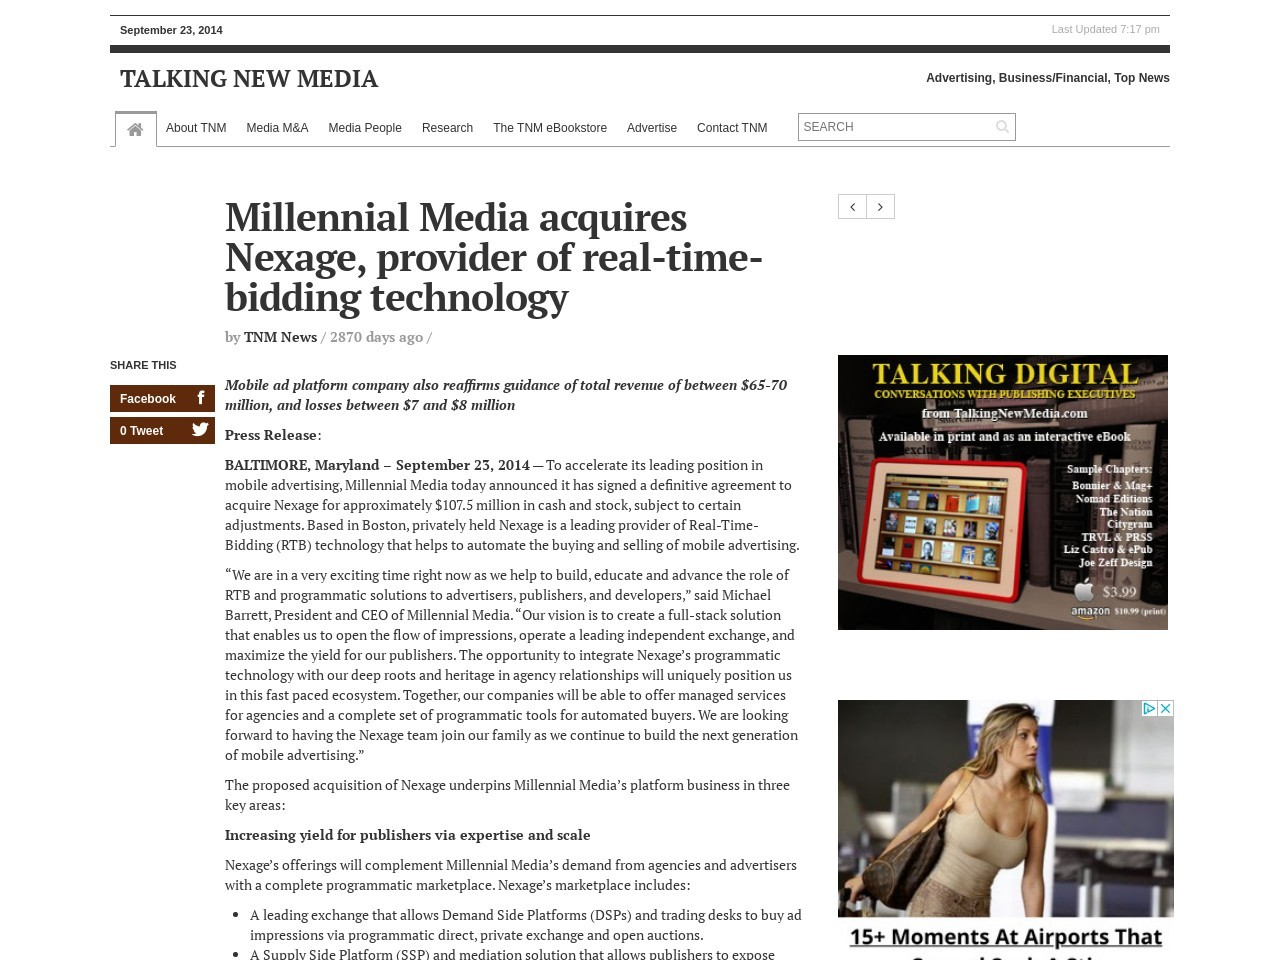 Millennial Media acquires Nexage, provider of real-time-bidding technology